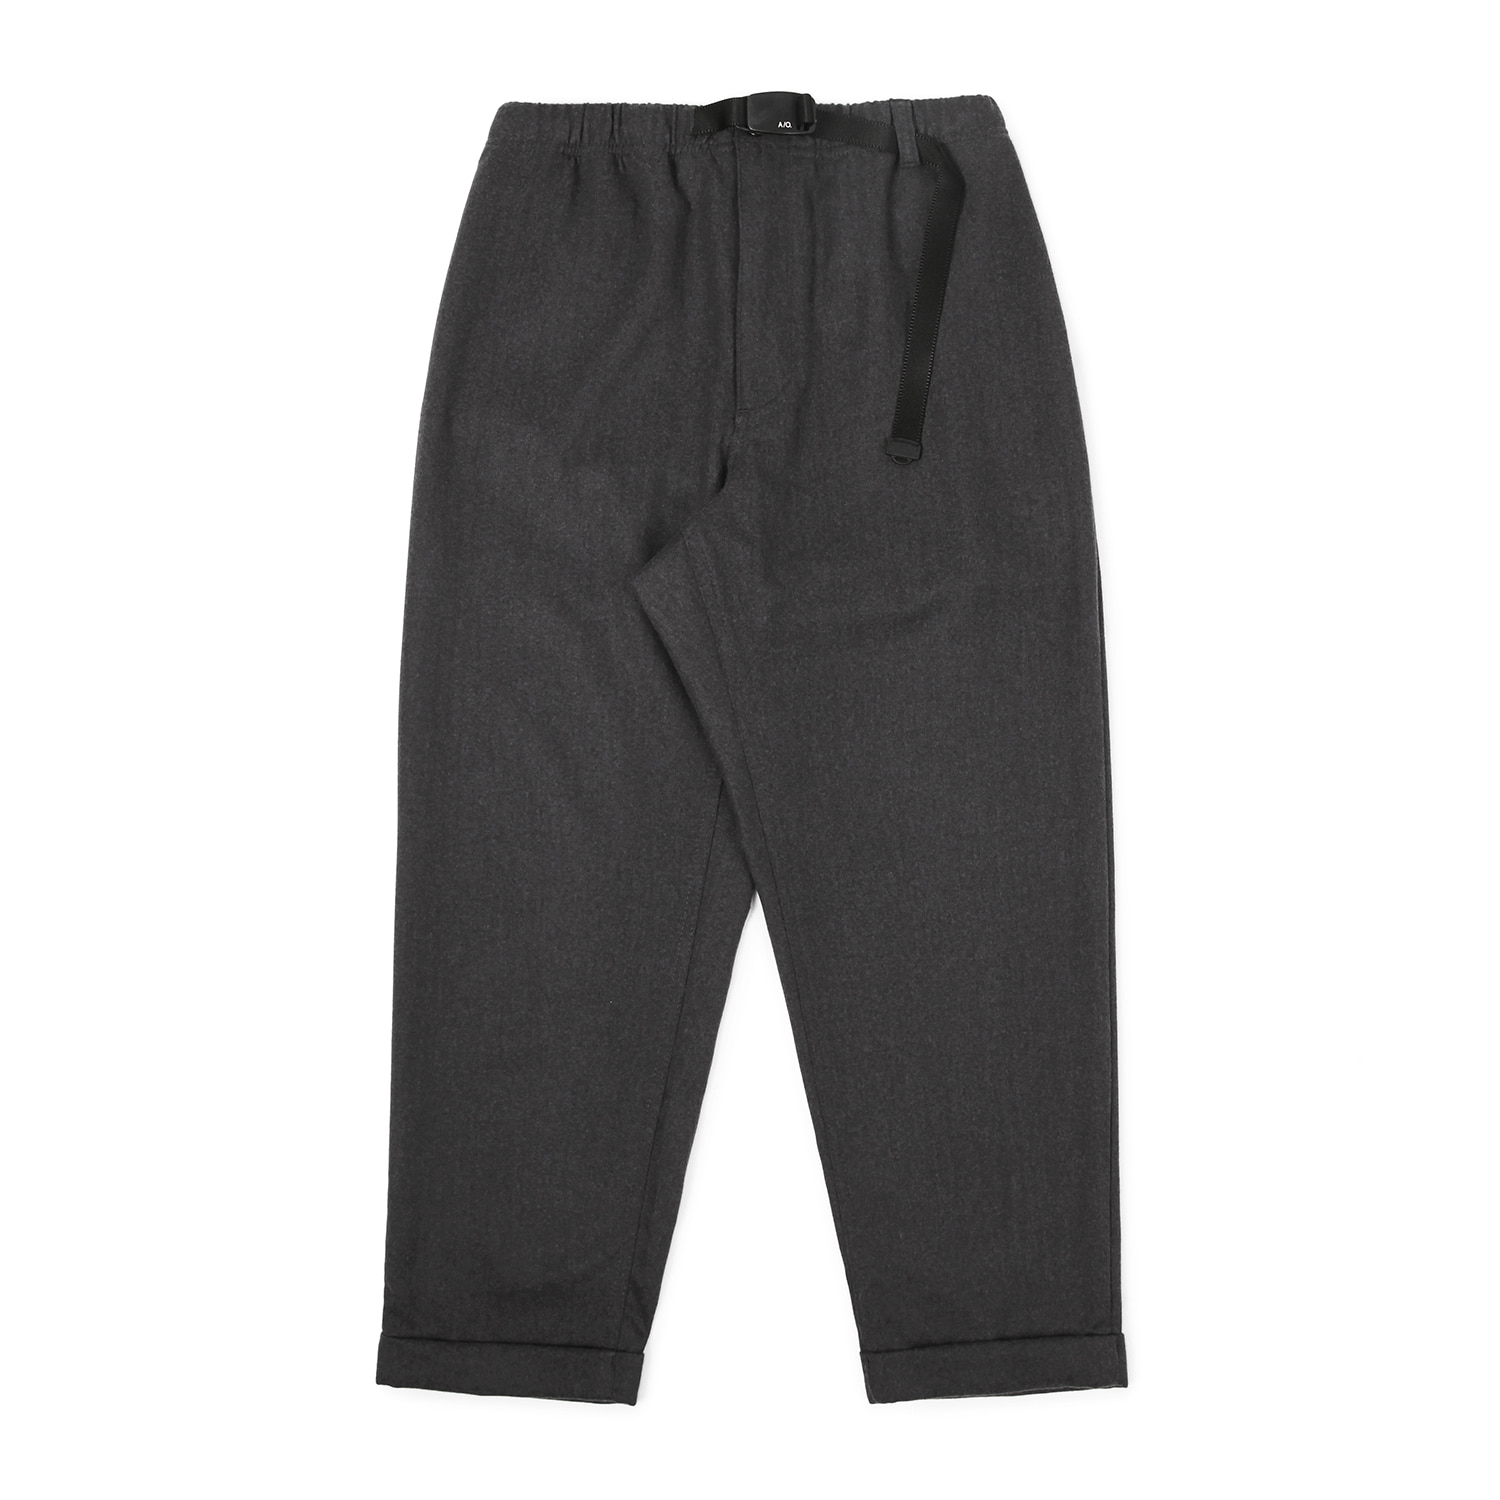 25% OFF_Stroller Herringbone Pants (Charcoal)